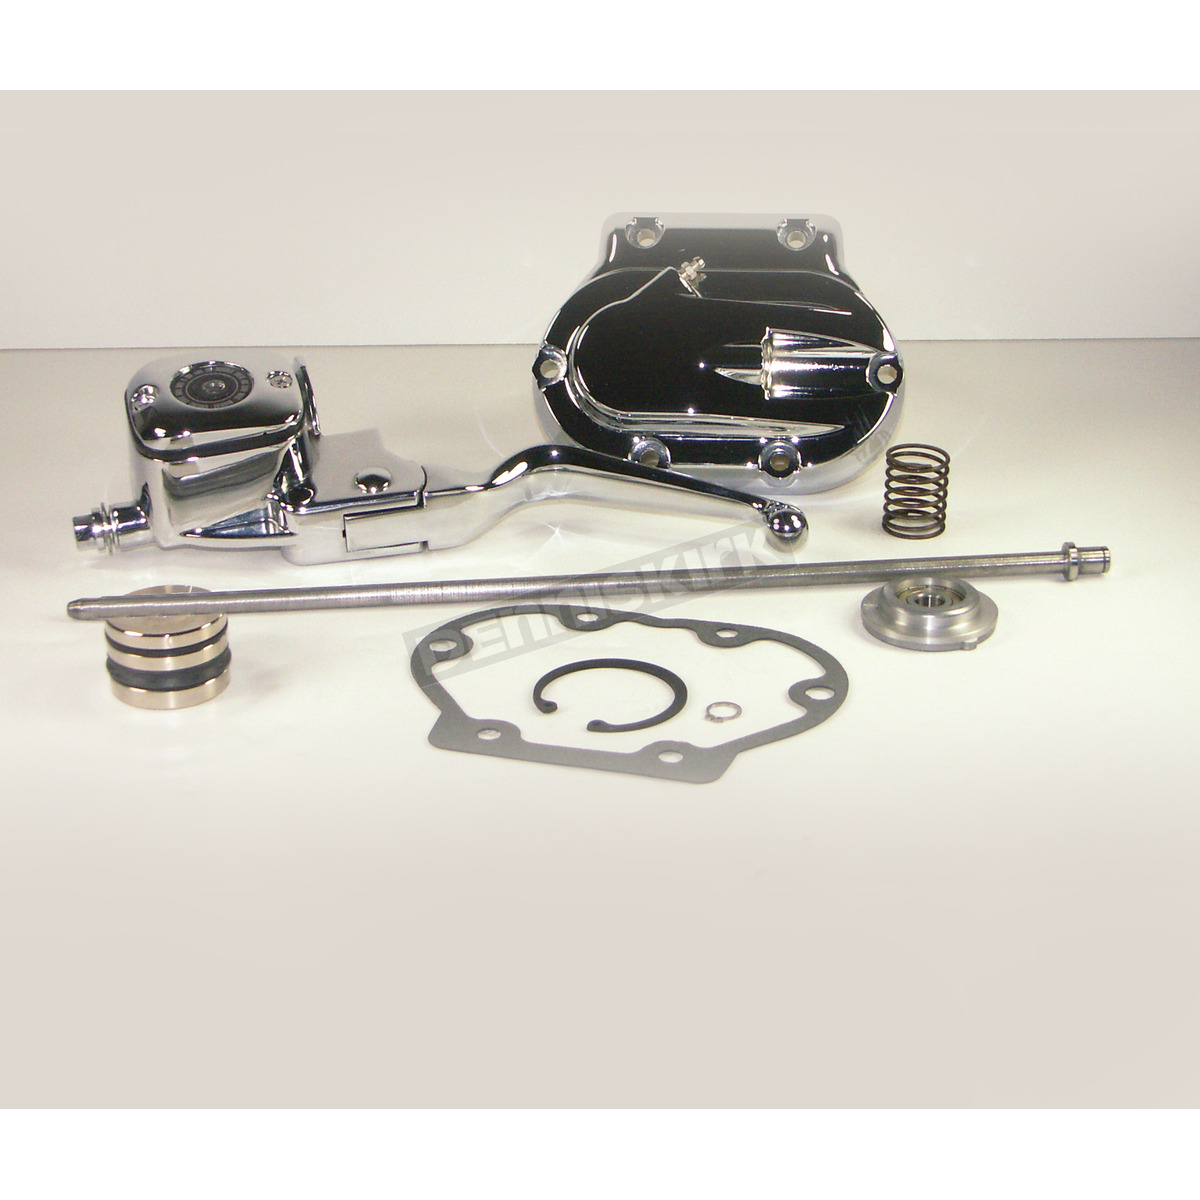 Hydraulic Clutch Kit for Big Twin - 71204